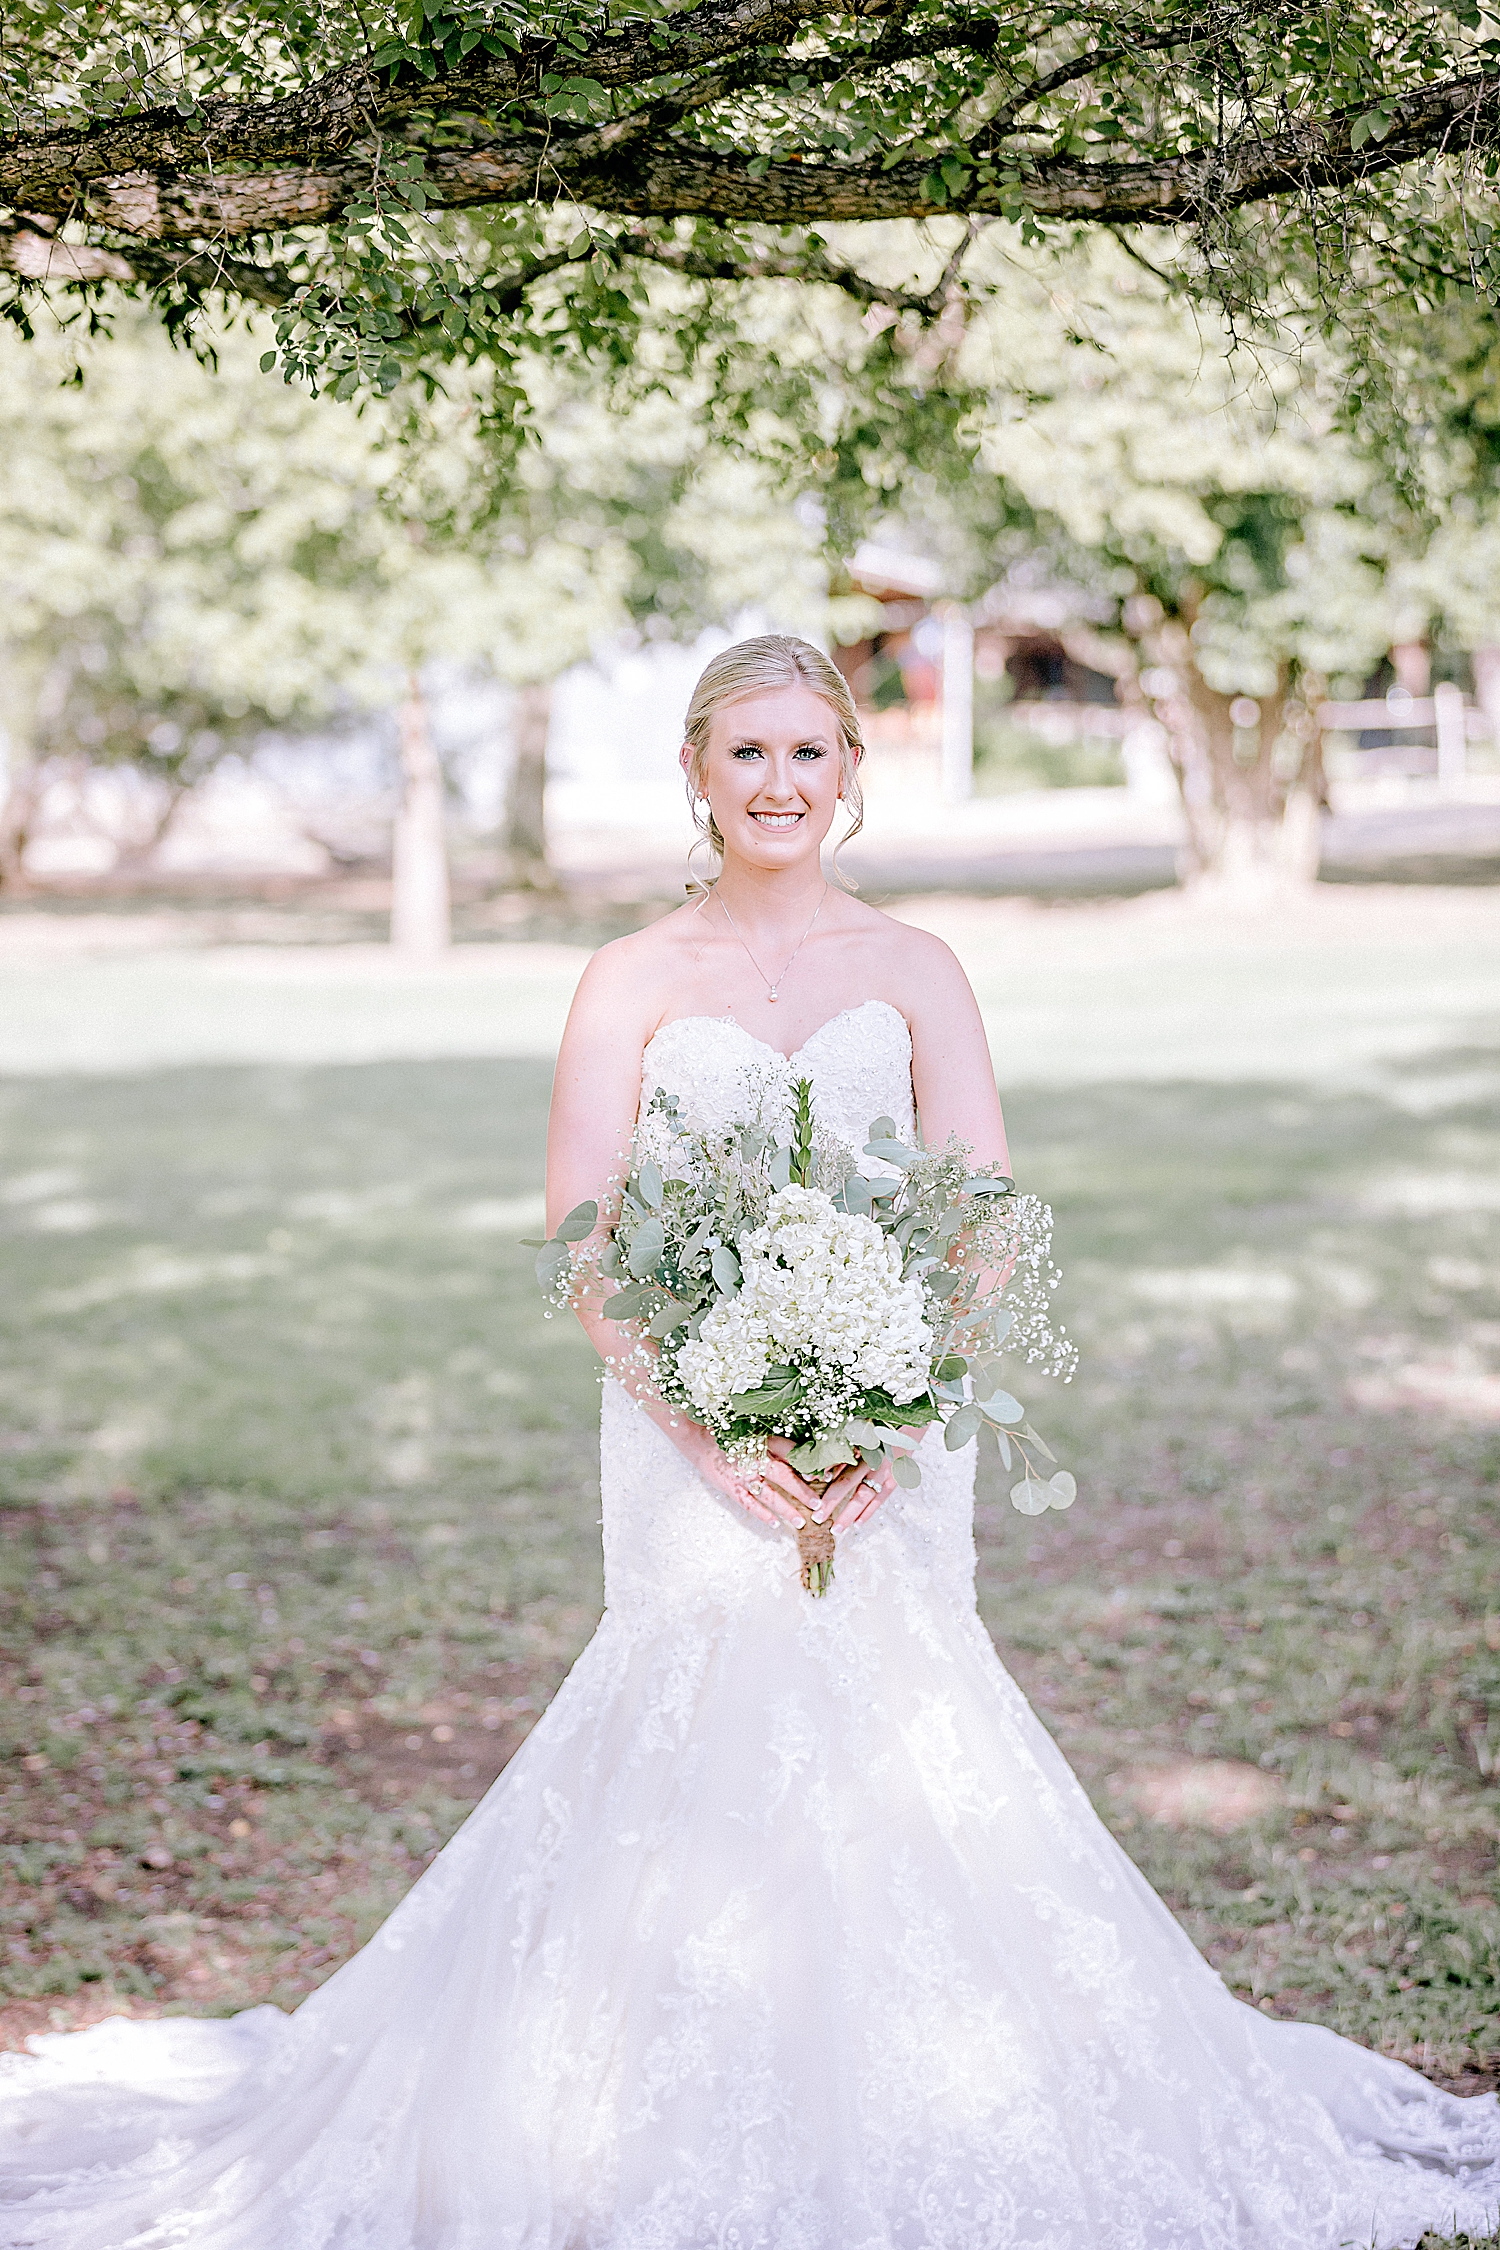 Carly-Barton-Photography-Bridal-Photos-Gruene-Rustic-New-Braunfels-Wedding-Photographer_0019.jpg